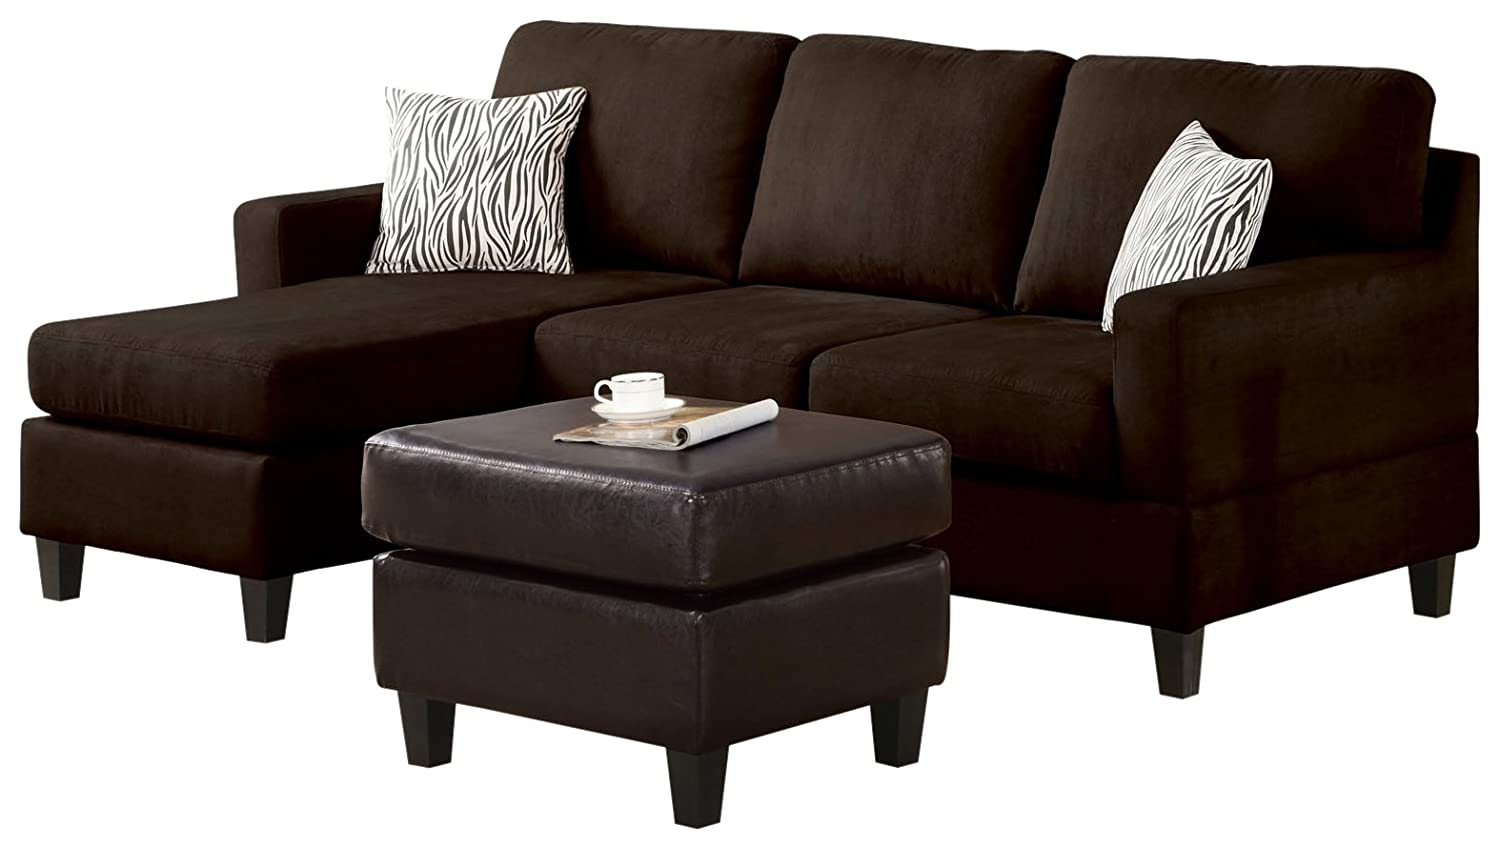 Amazon.com: ACME Vogue Reversible Sectional Chaise, Chocolate Microfiber:  Kitchen U0026 Dining